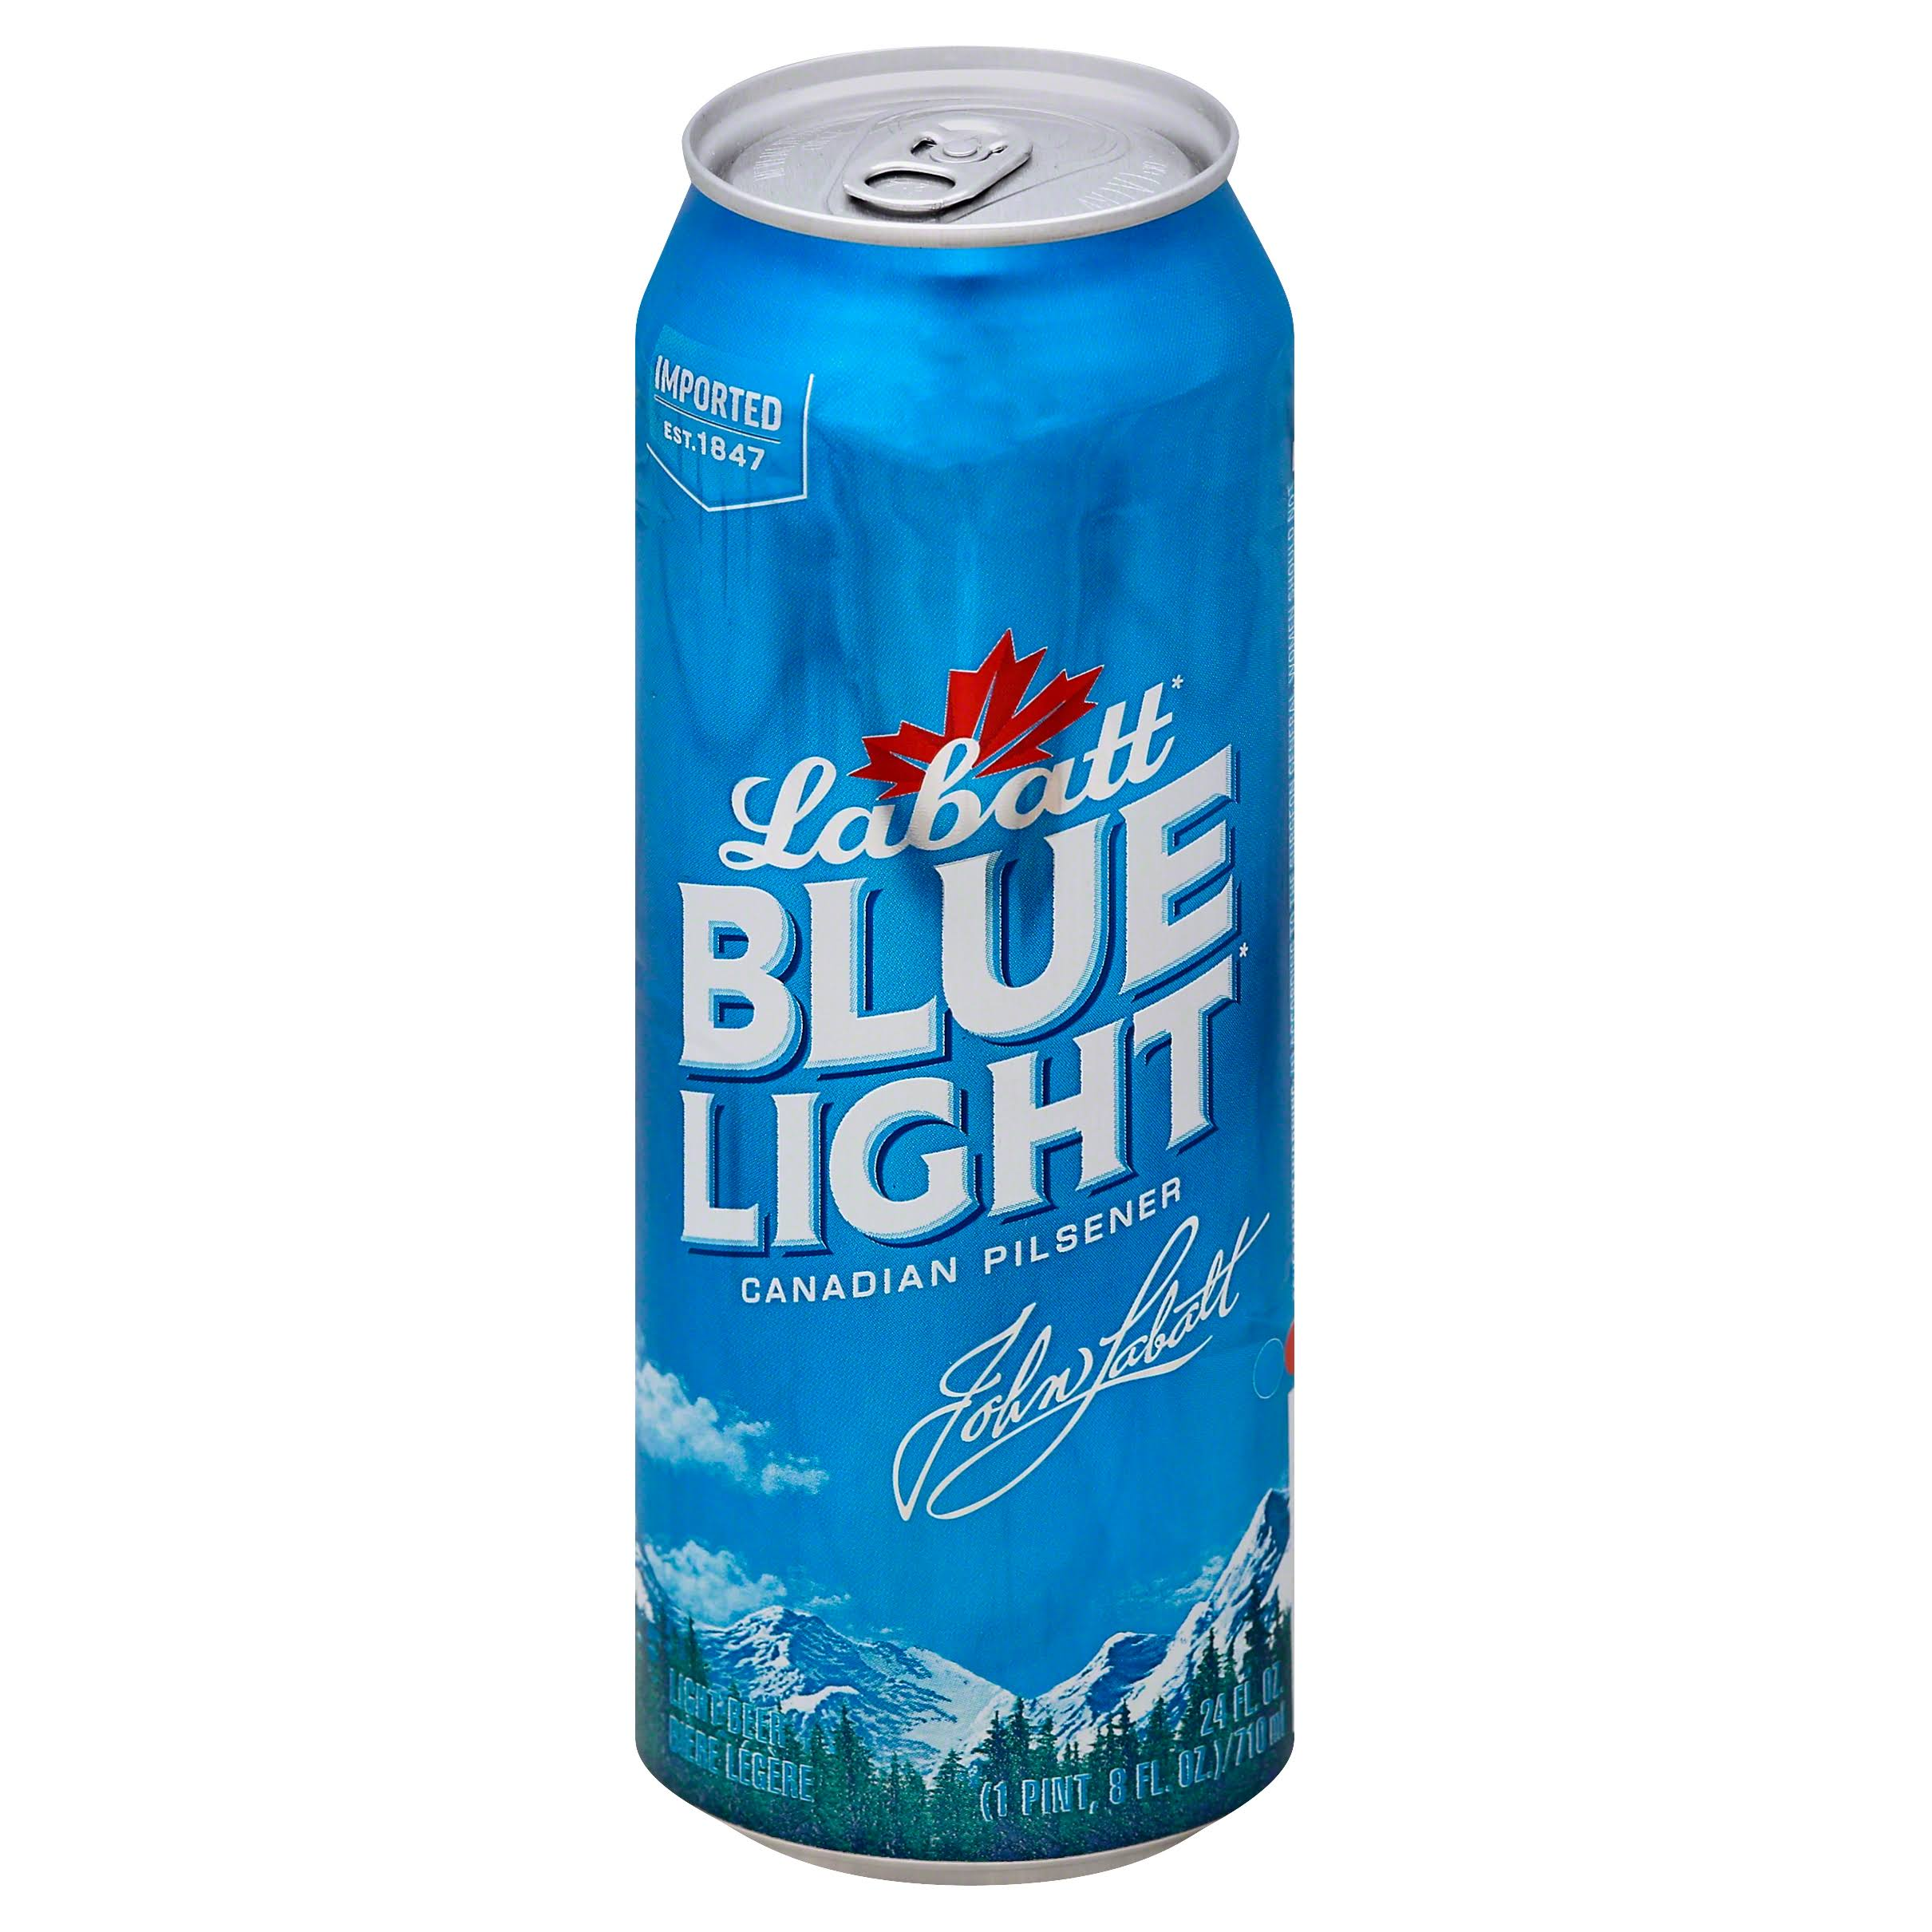 Labatt Blue Light Beer, Light, Canadian Pilsner - 24 fl oz